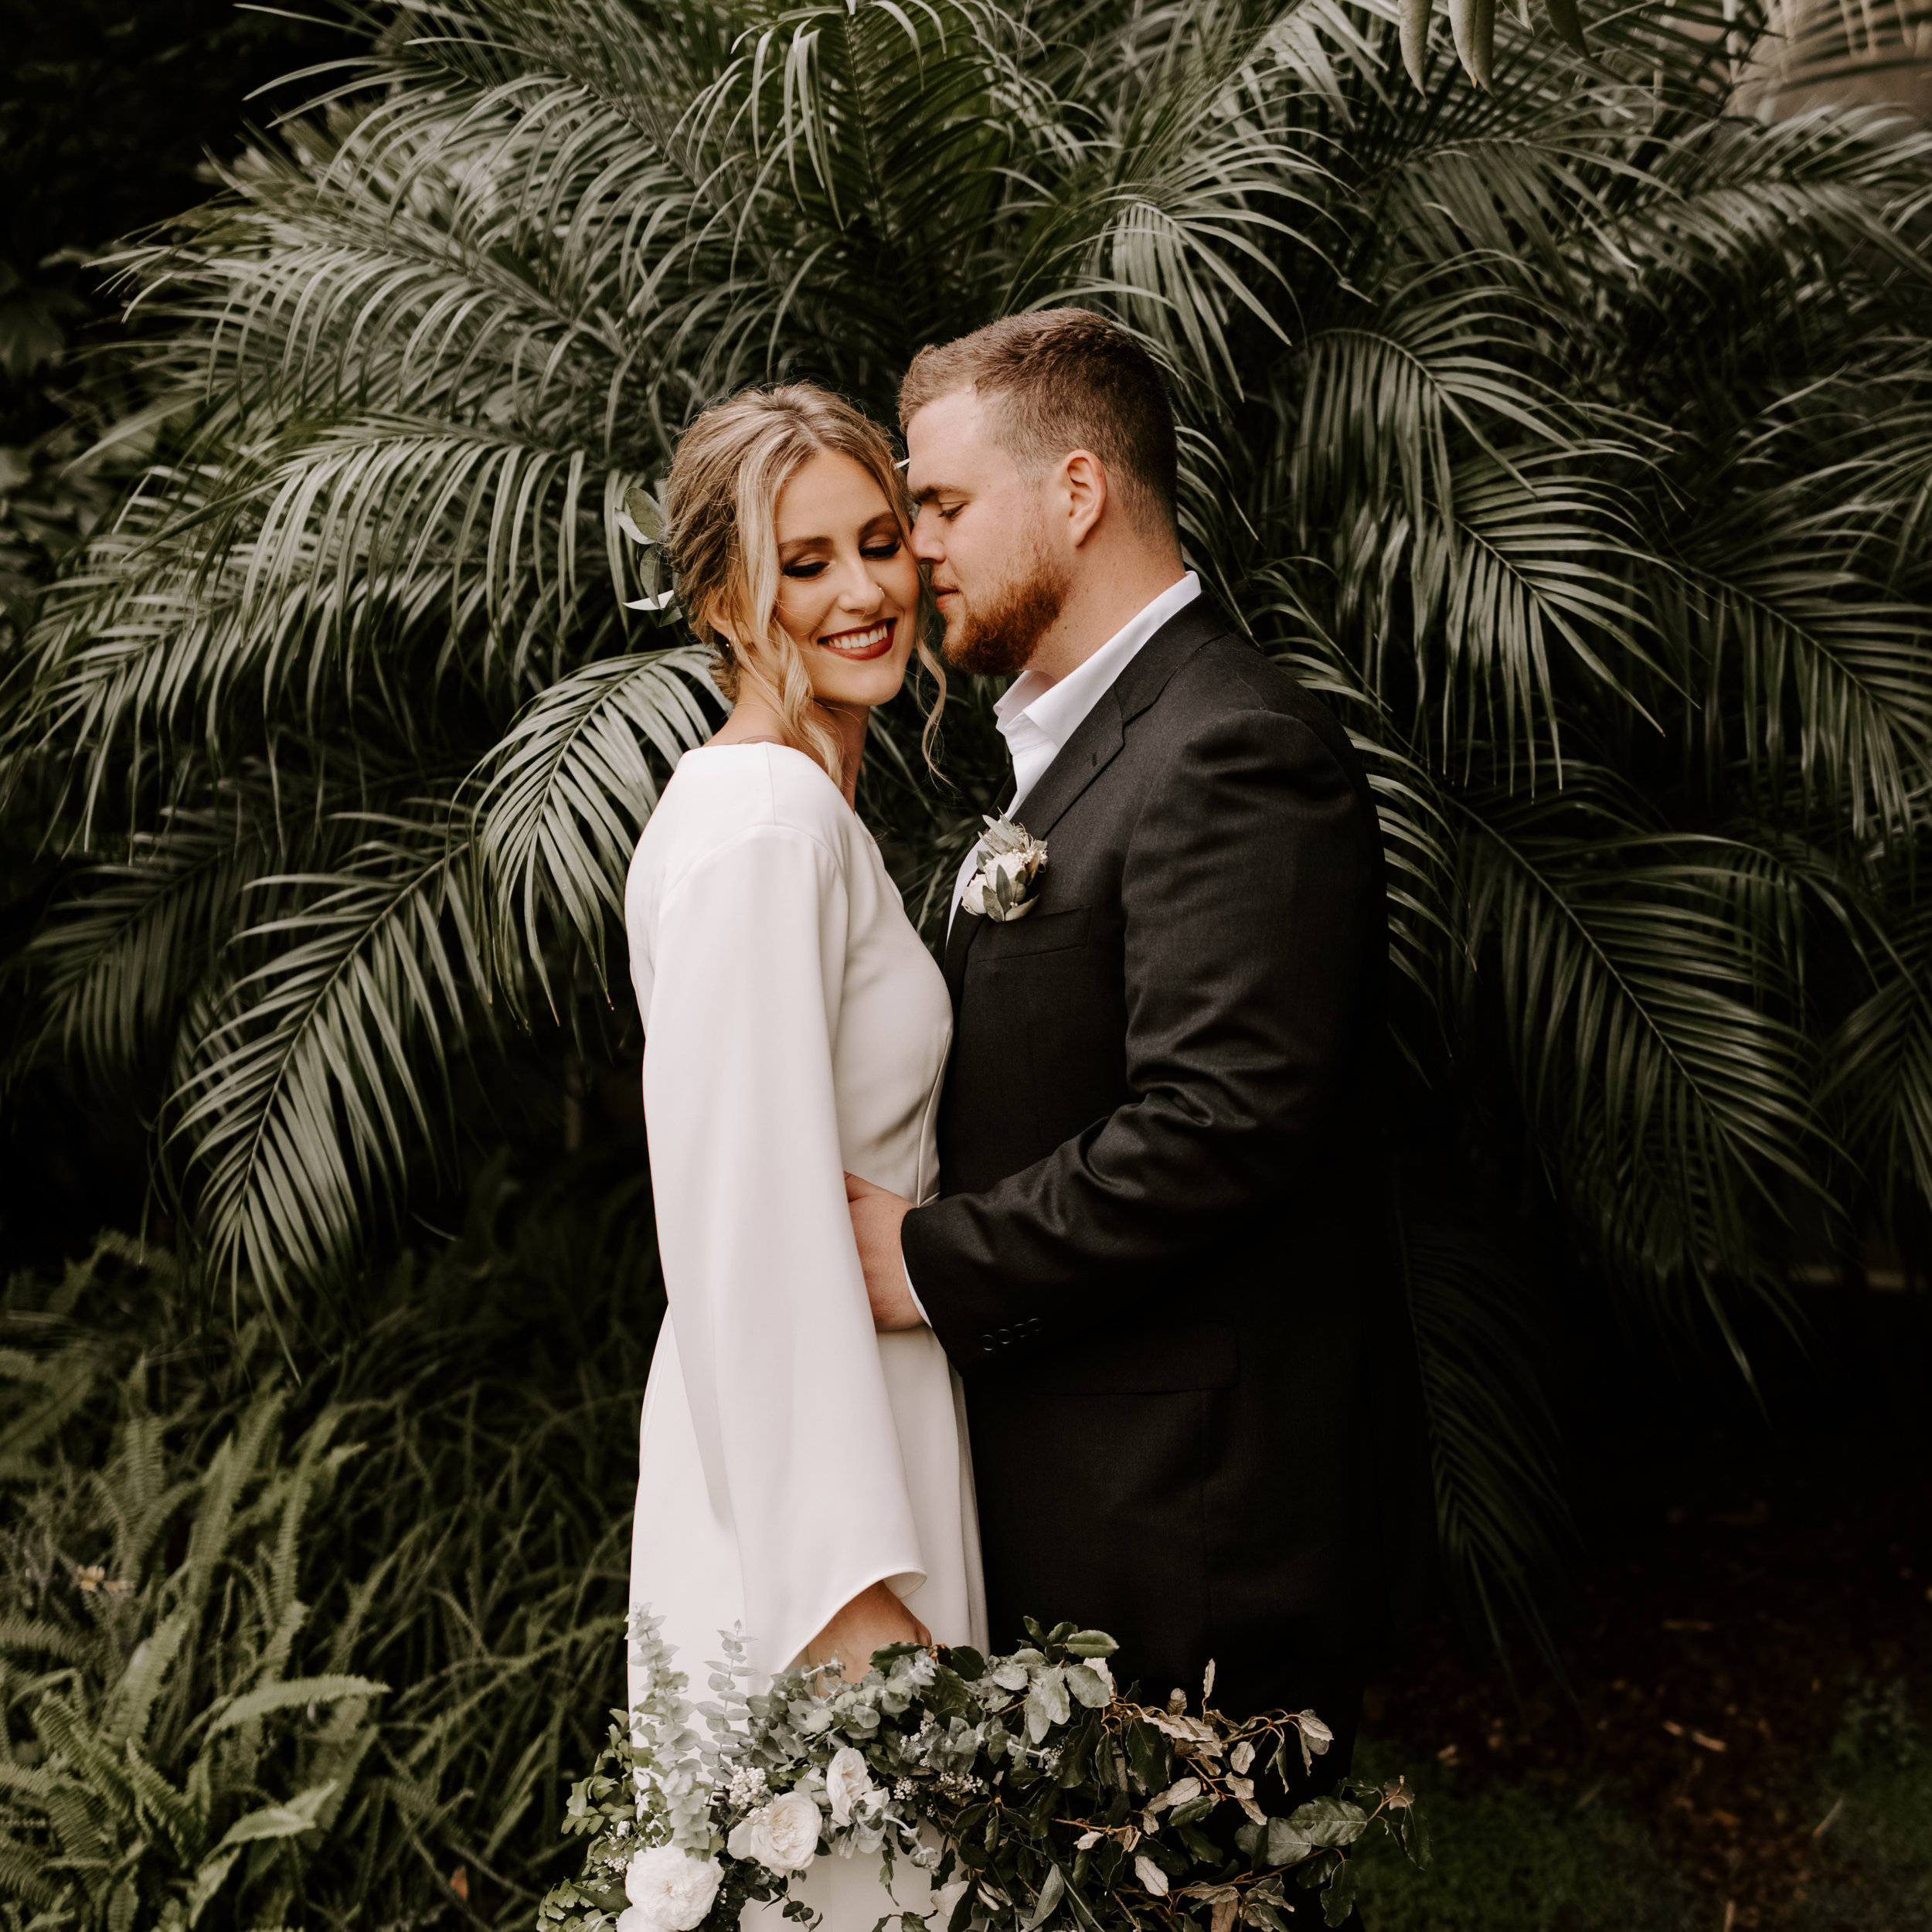 WEDDINGSStarting at $2900 - I've been photographing weddings for six years, but Clayton hopped on board in 2018 and we've loved being a part of wedding days with each other. The moment I saw Clayton crying for the first time during vows, I knew he was meant to be my sidekick on wedding days!